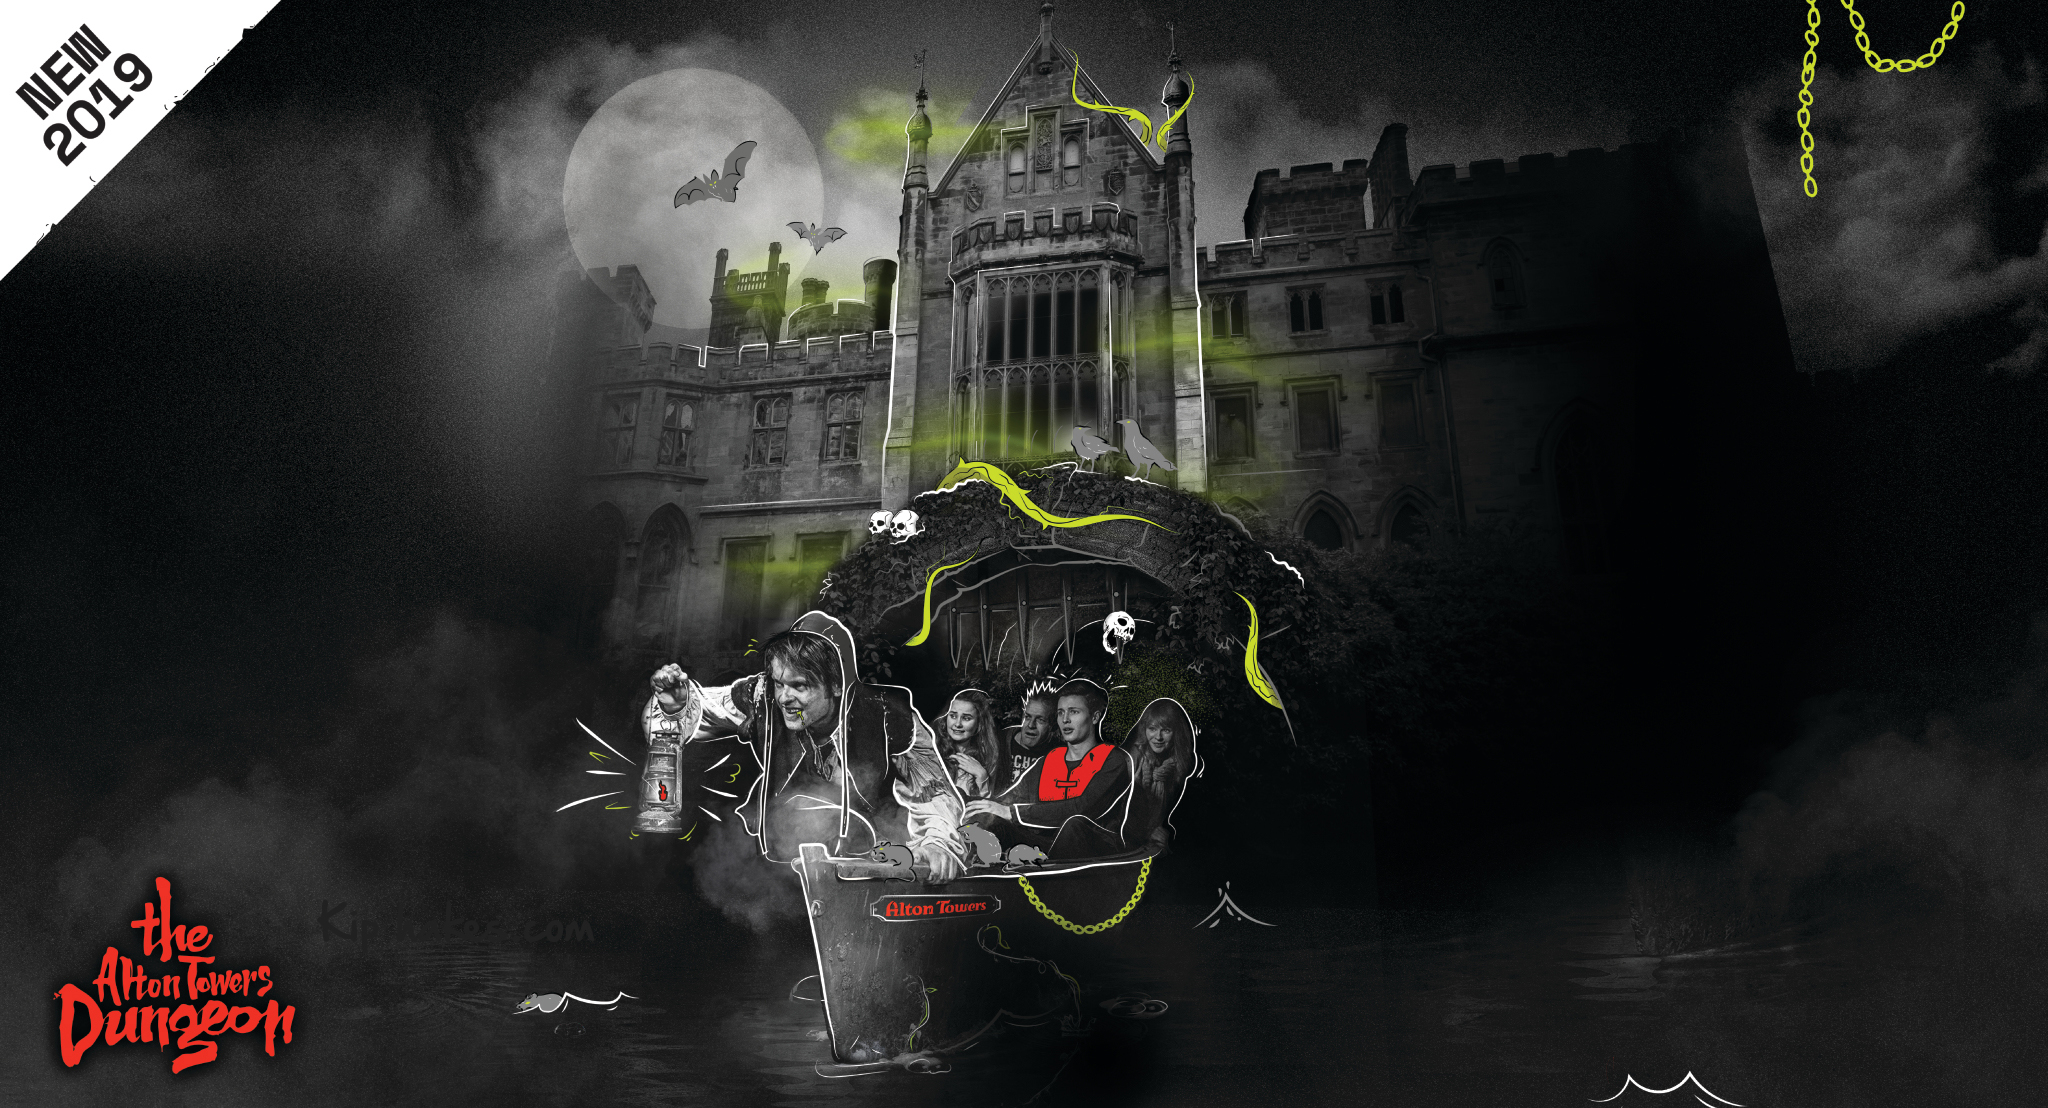 The first Image of the Alton Towers Dungeon is here!